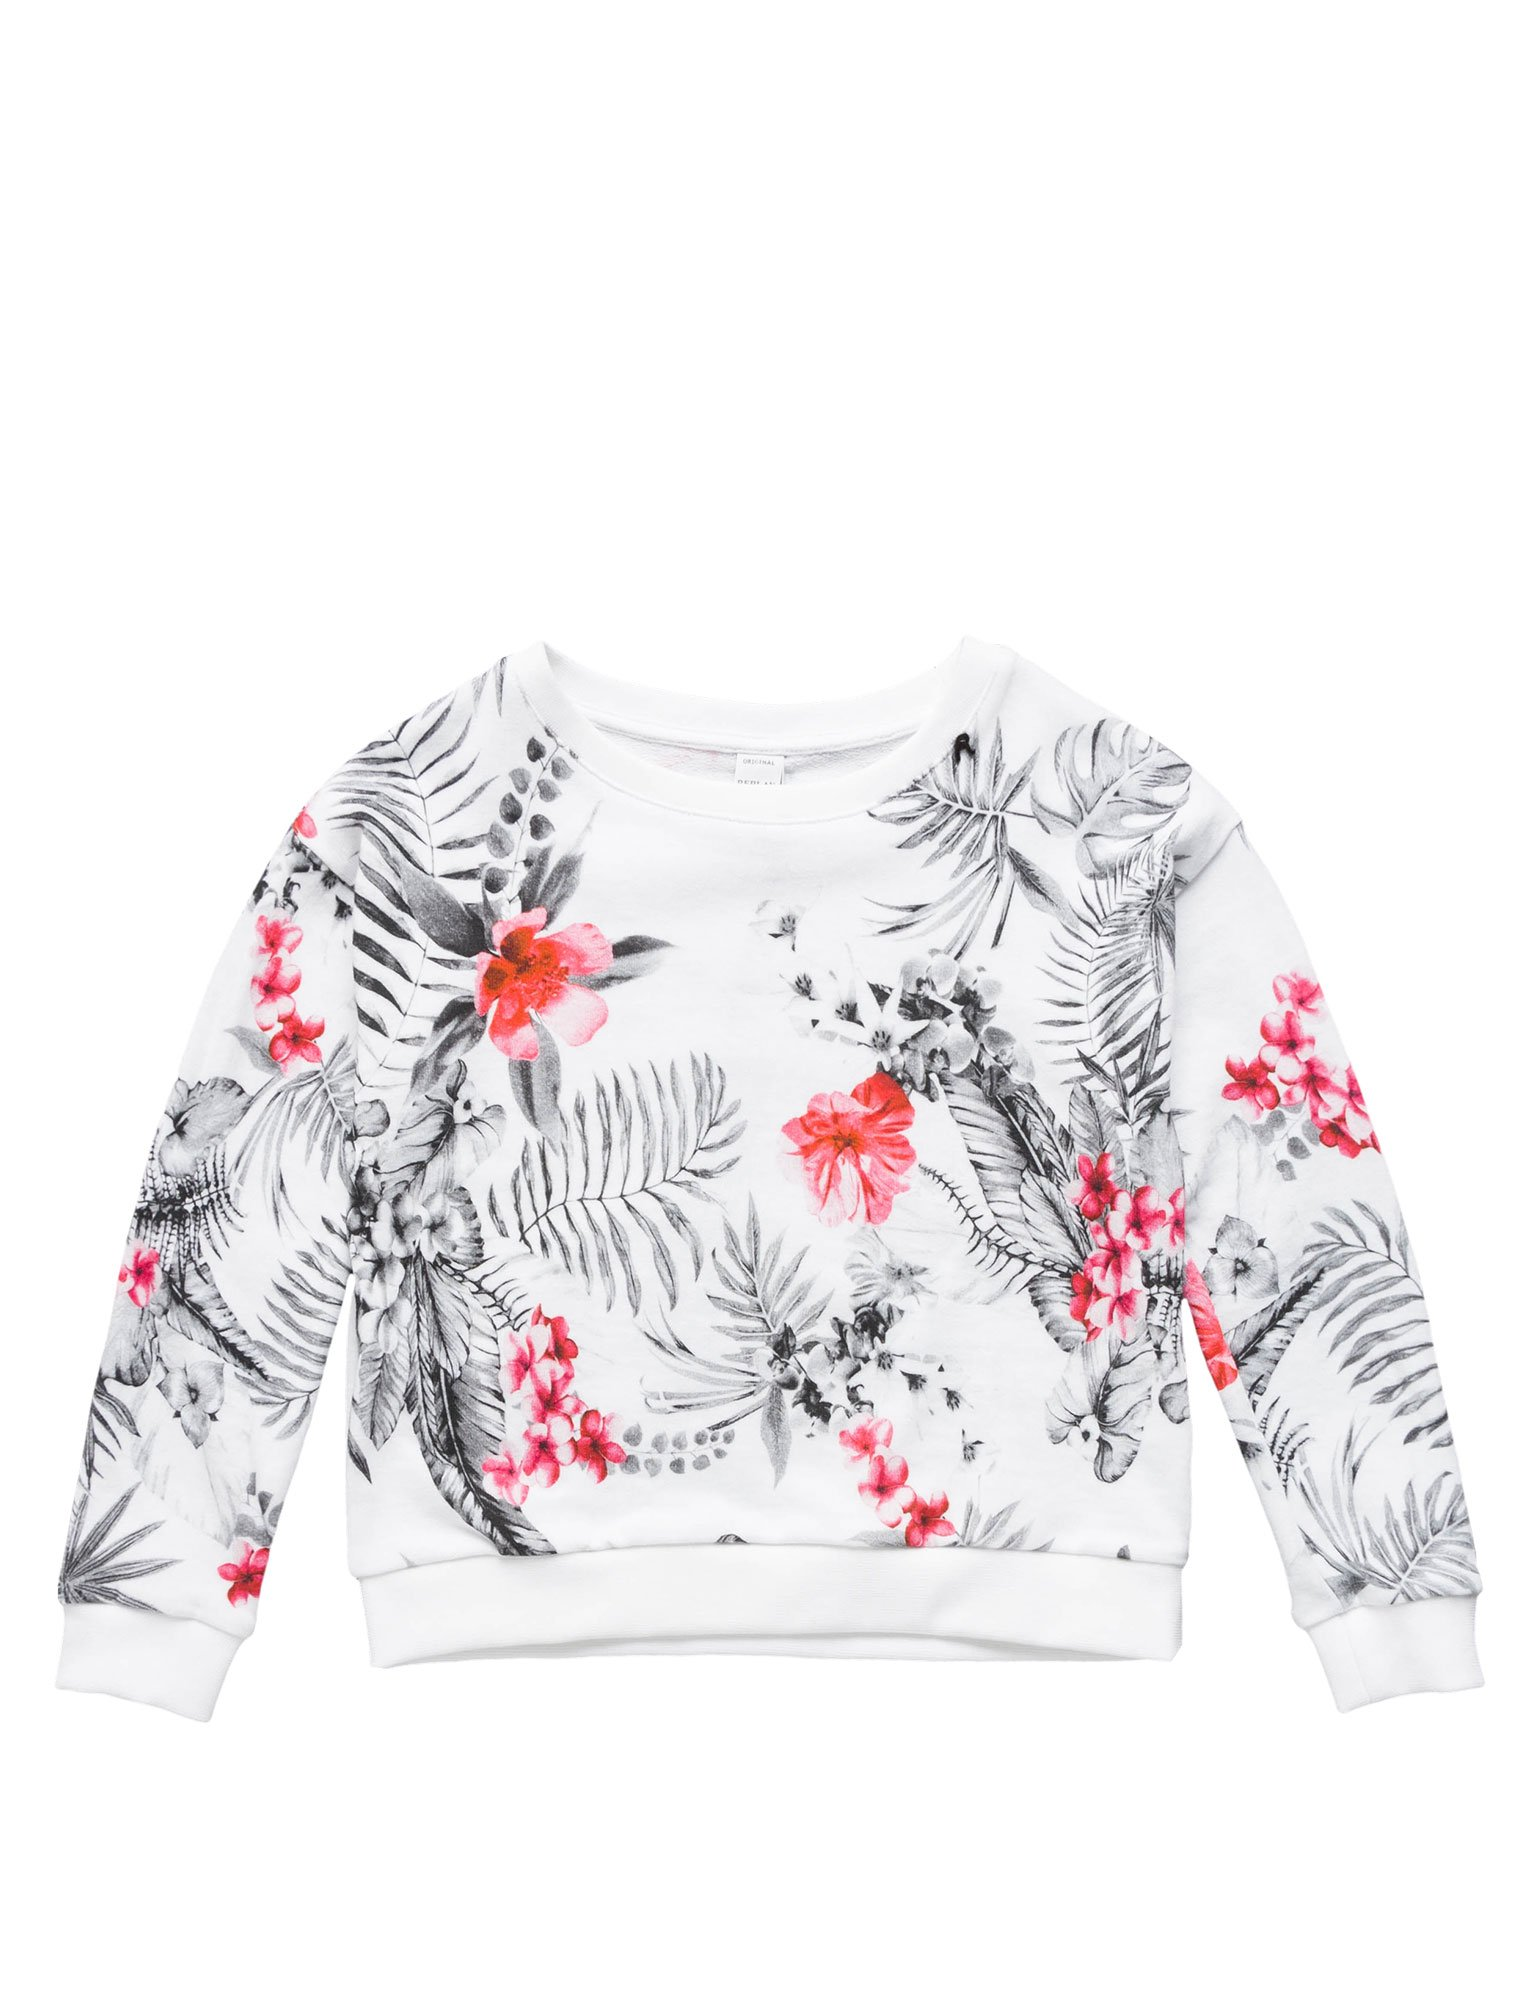 Replay Floral-Print Cotton Girl's Sweatshirt In Size 6 Years multicolour